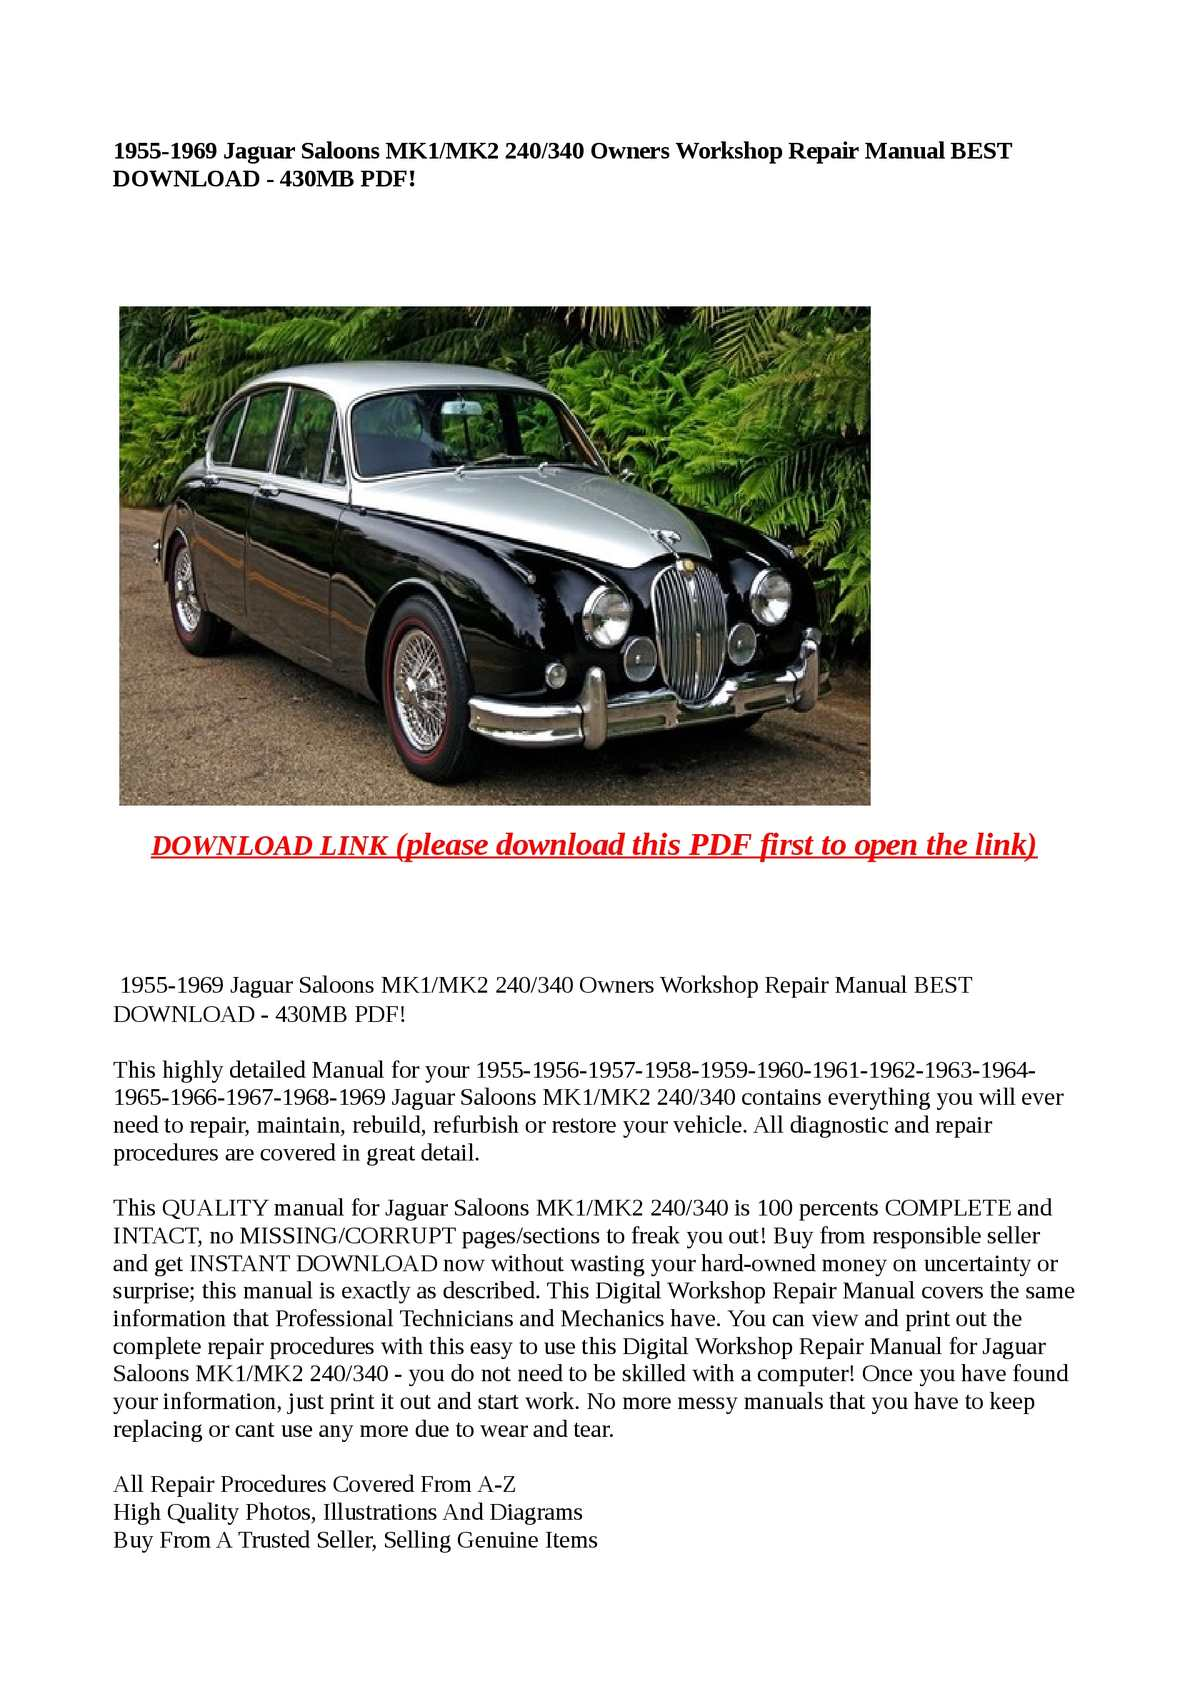 Jaguar Mk2 Wiring Diagram Download Schematics Diagrams Xjs Calam O 1955 1969 Saloons Mk1 240 340 Owners Works Rh Calameo Com Guitar Fender